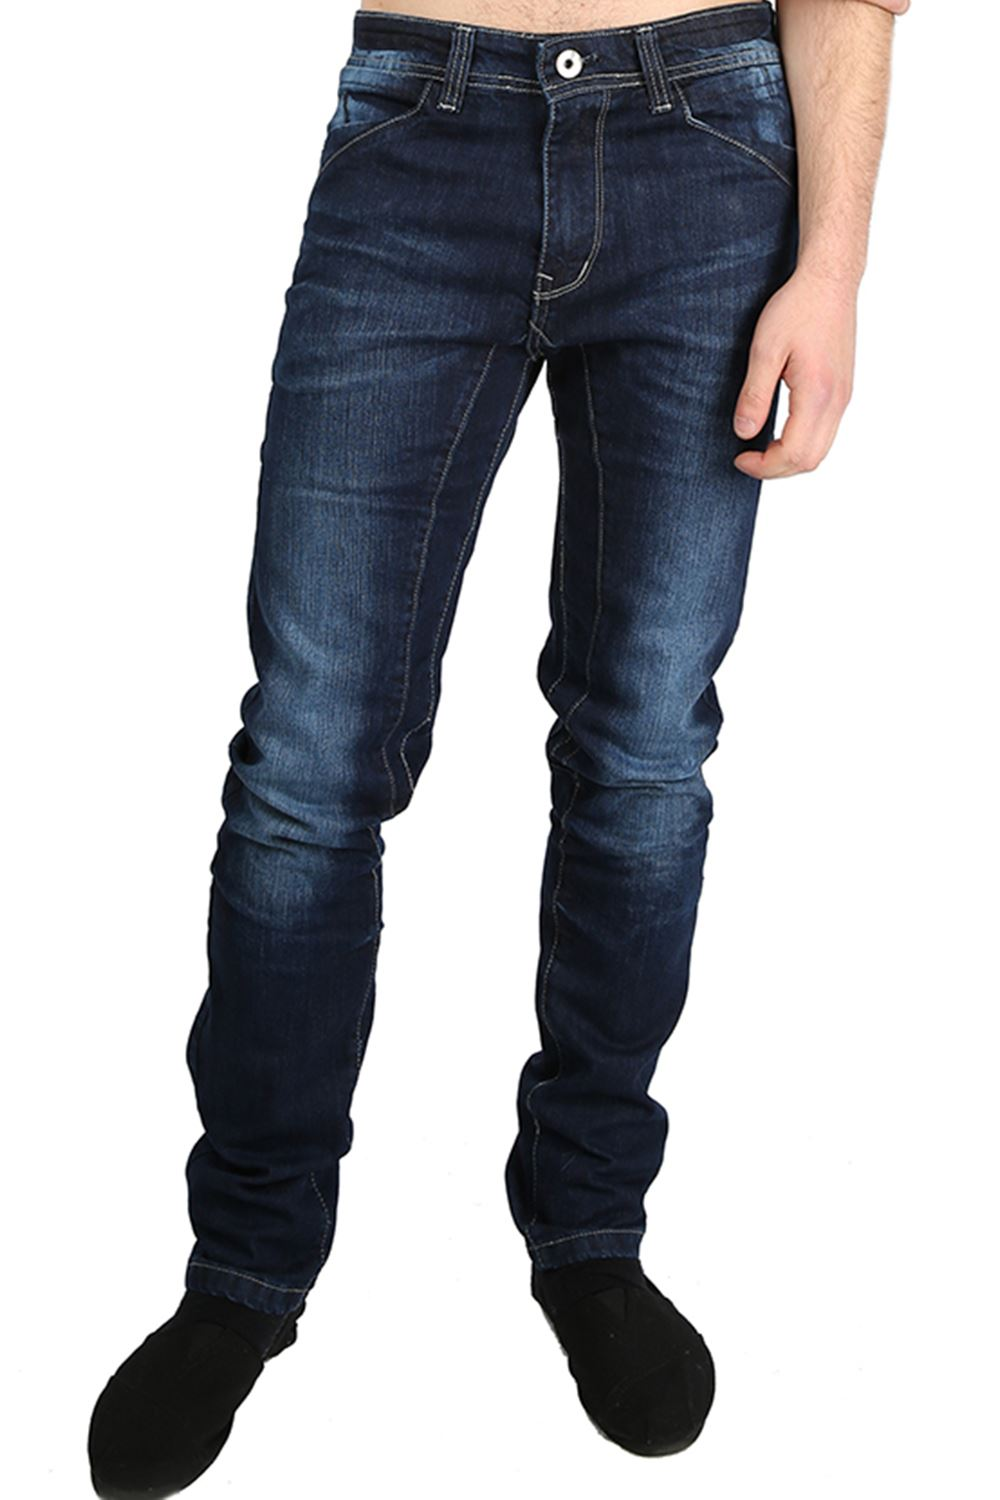 Mar 29,  · Slim Fit Jeans: They fall in between the skinny and straight fit types of tentrosegaper.gaoning-Sits low on the waist, it is narrow, hip and thigh fit. Recommendable to People with an athletic build. Recommendable to People with an athletic build.